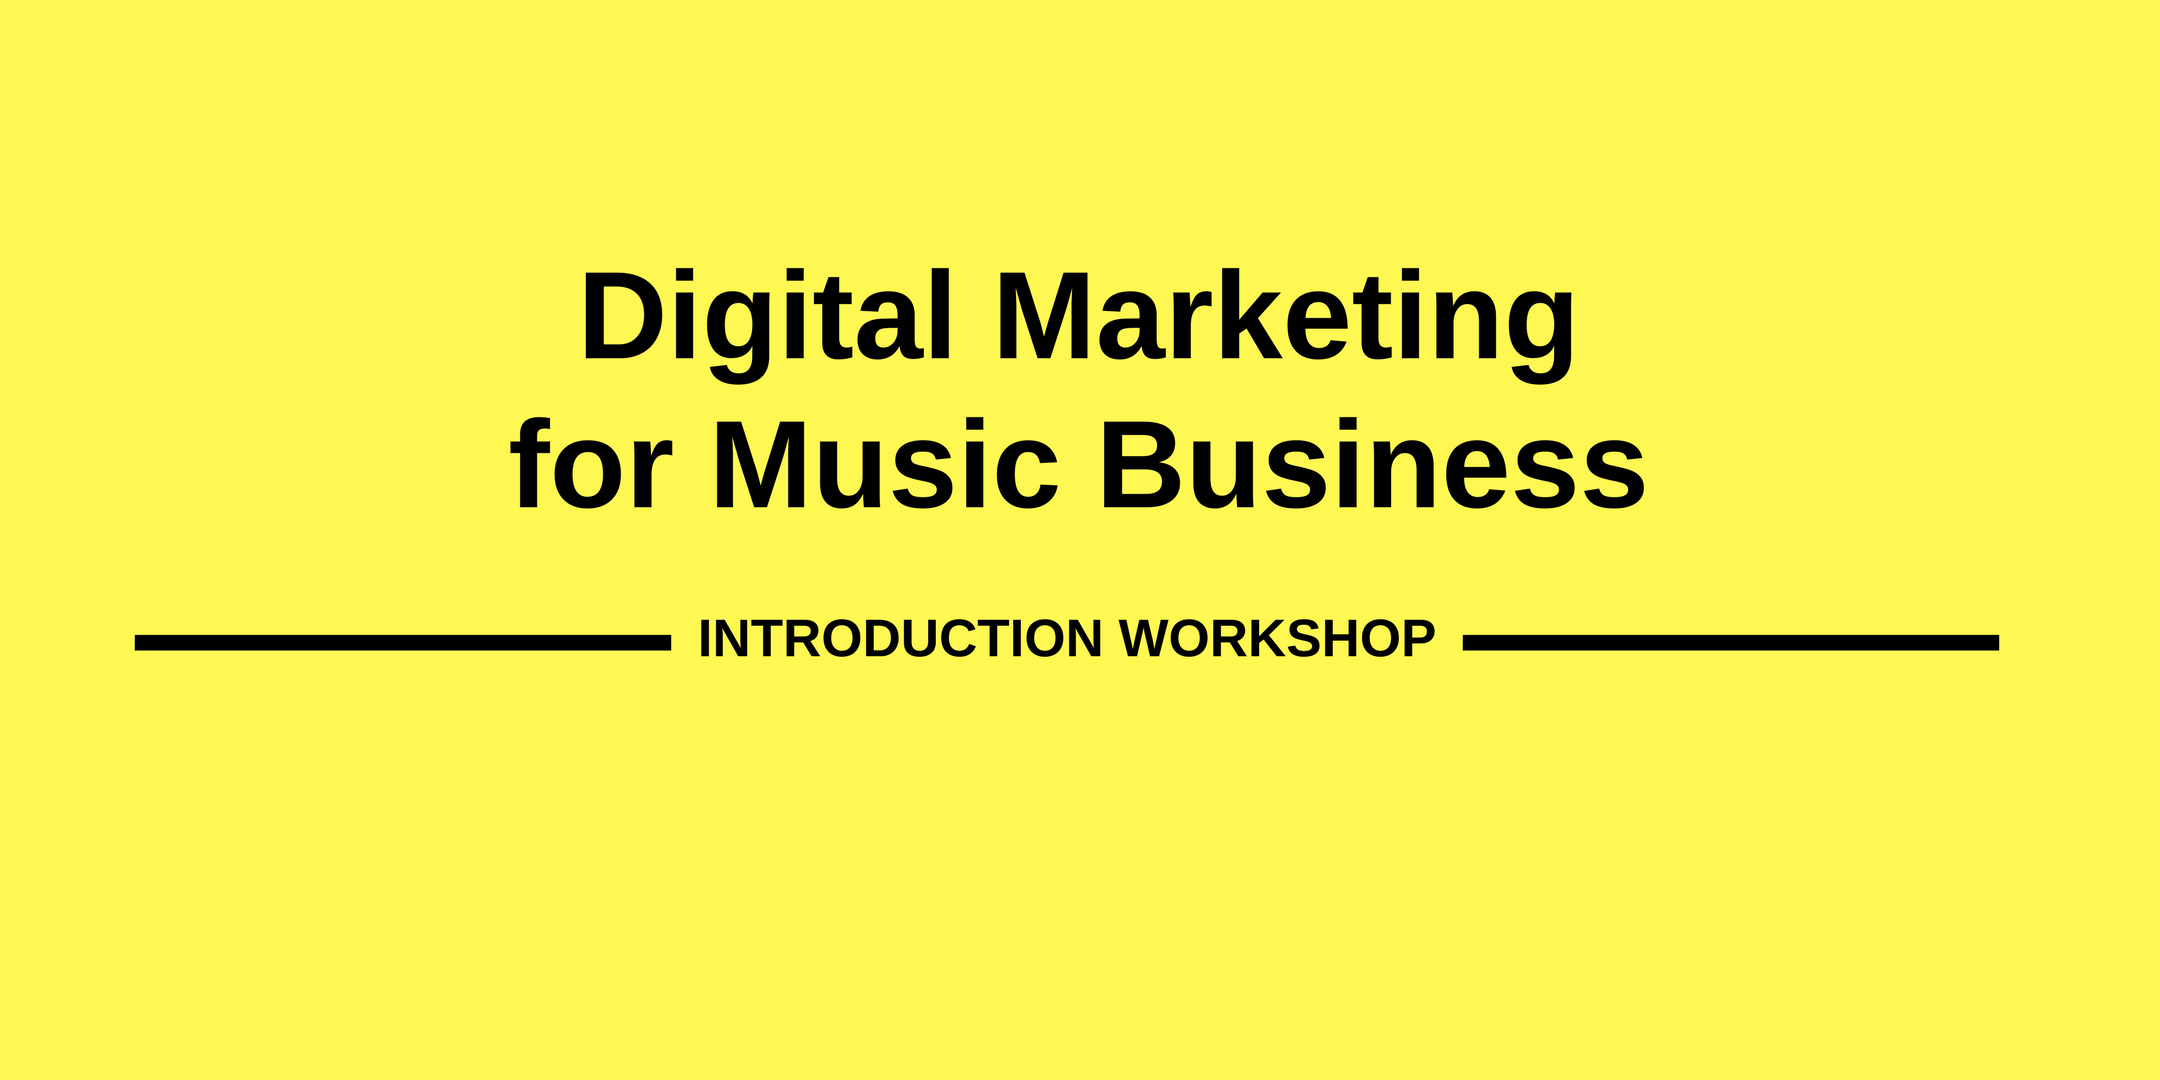 Digital Marketing for Music Business